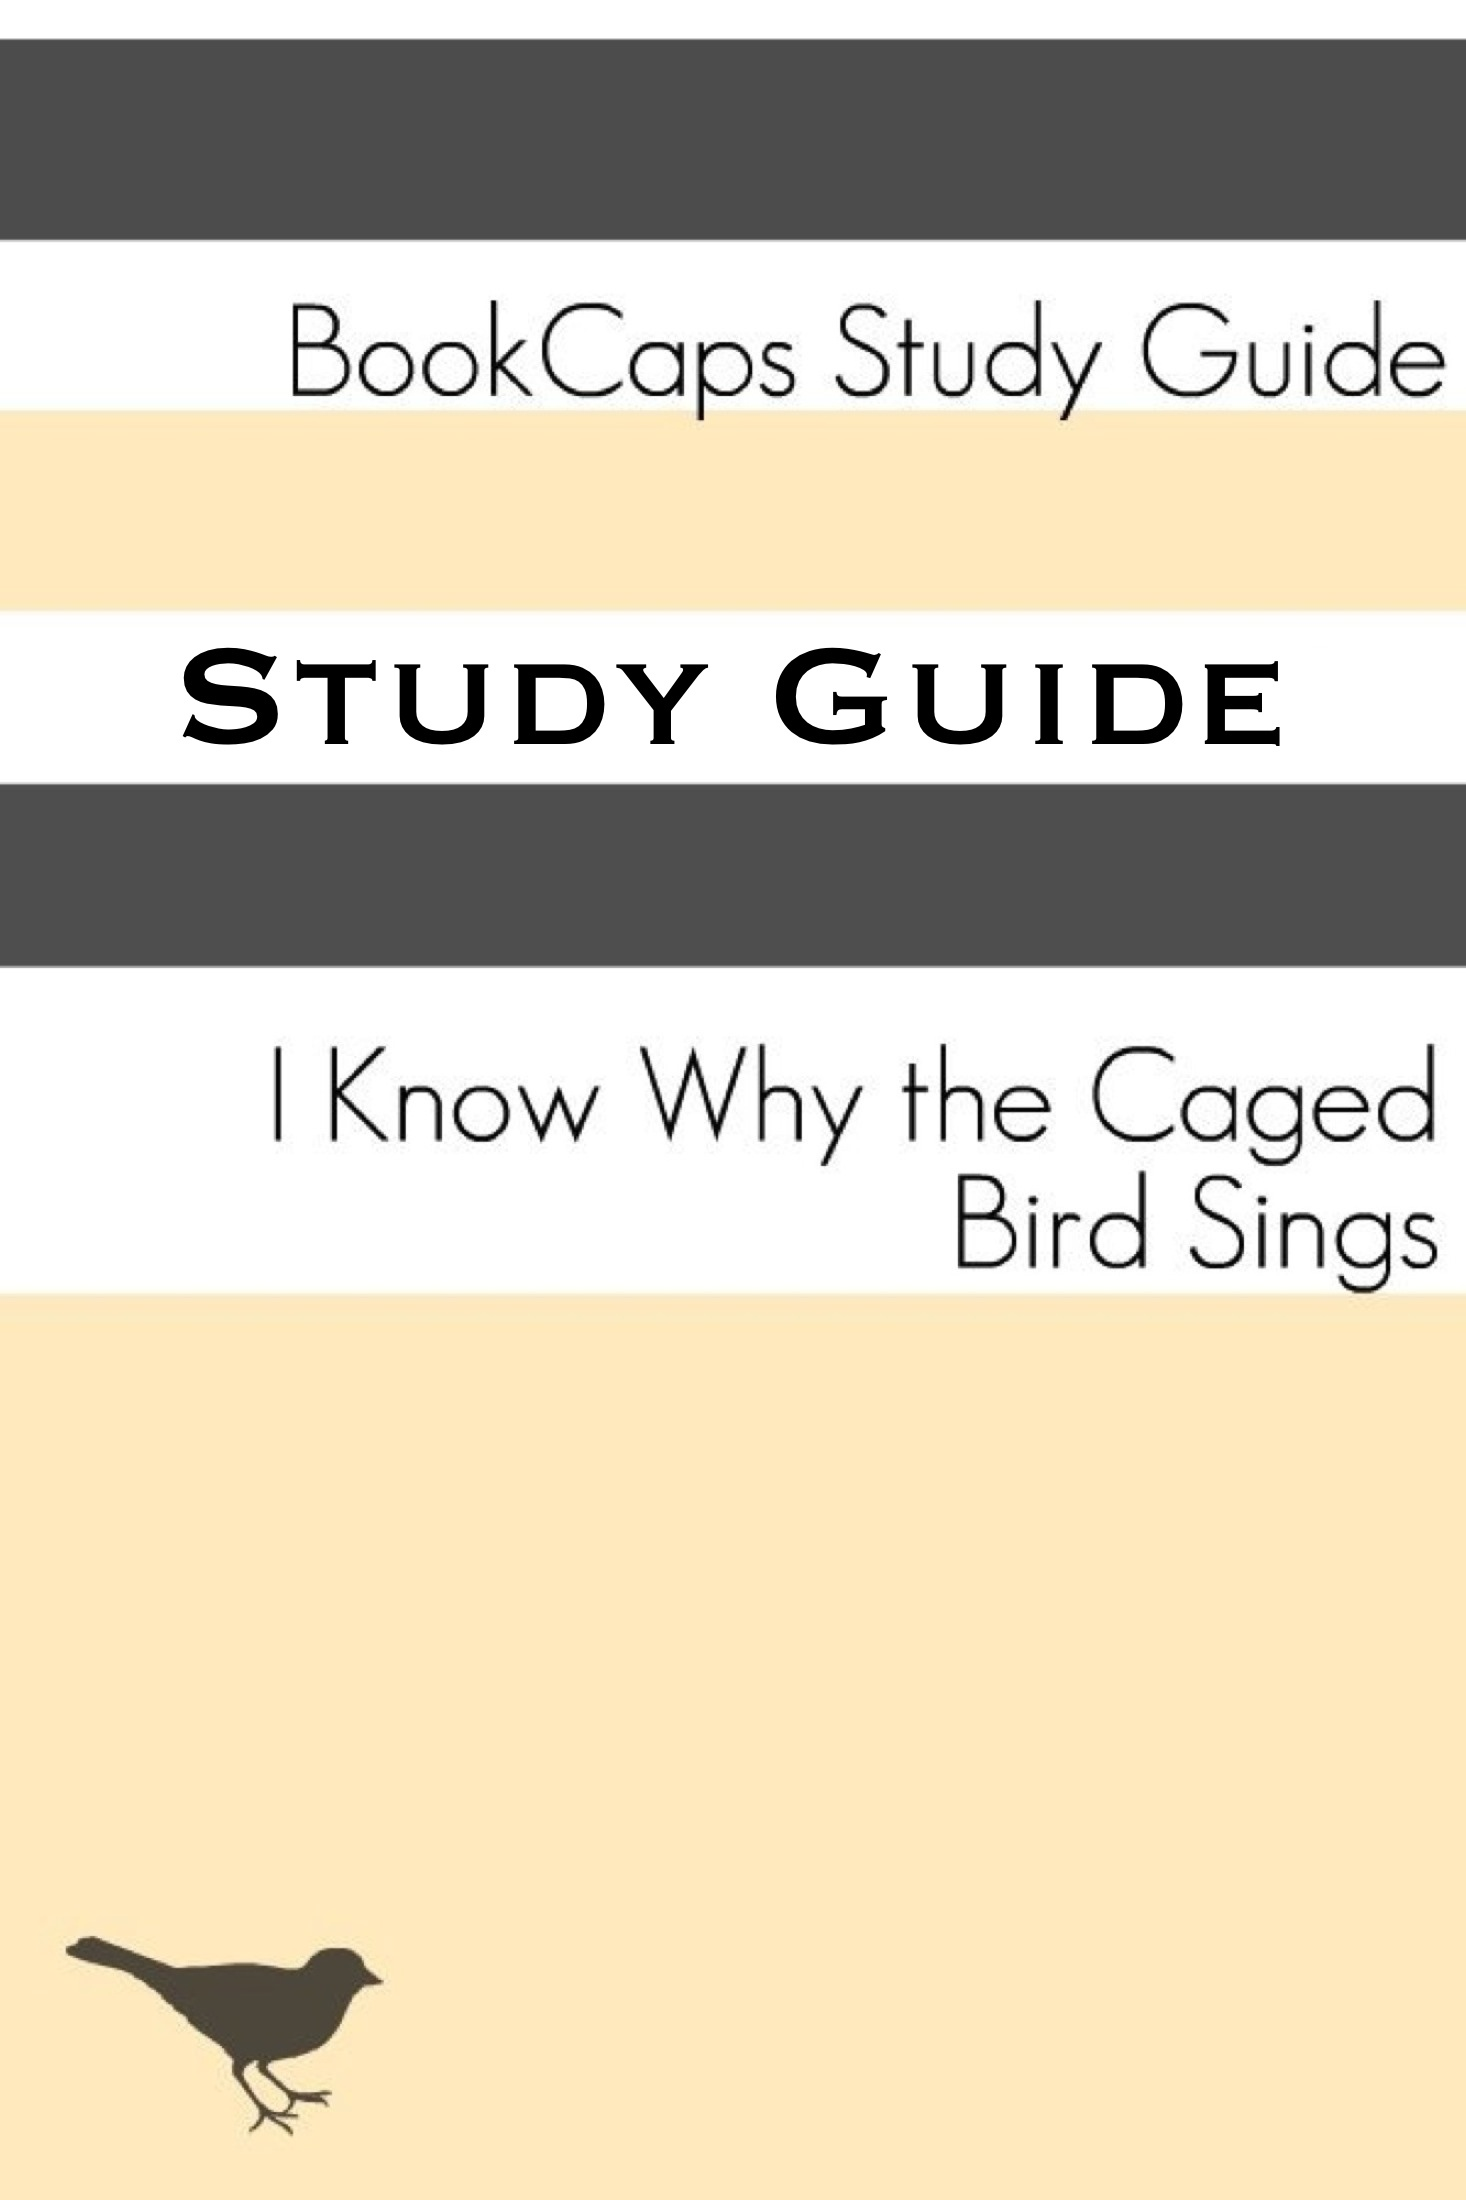 a literary analysis of the novel i know why the caged bird sings Immediately download the i know why the caged bird sings summary, chapter-by-chapter analysis, book notes, essays, quotes, character descriptions, lesson plans, and more - everything you need for studying or teaching i know why the caged bird sings.